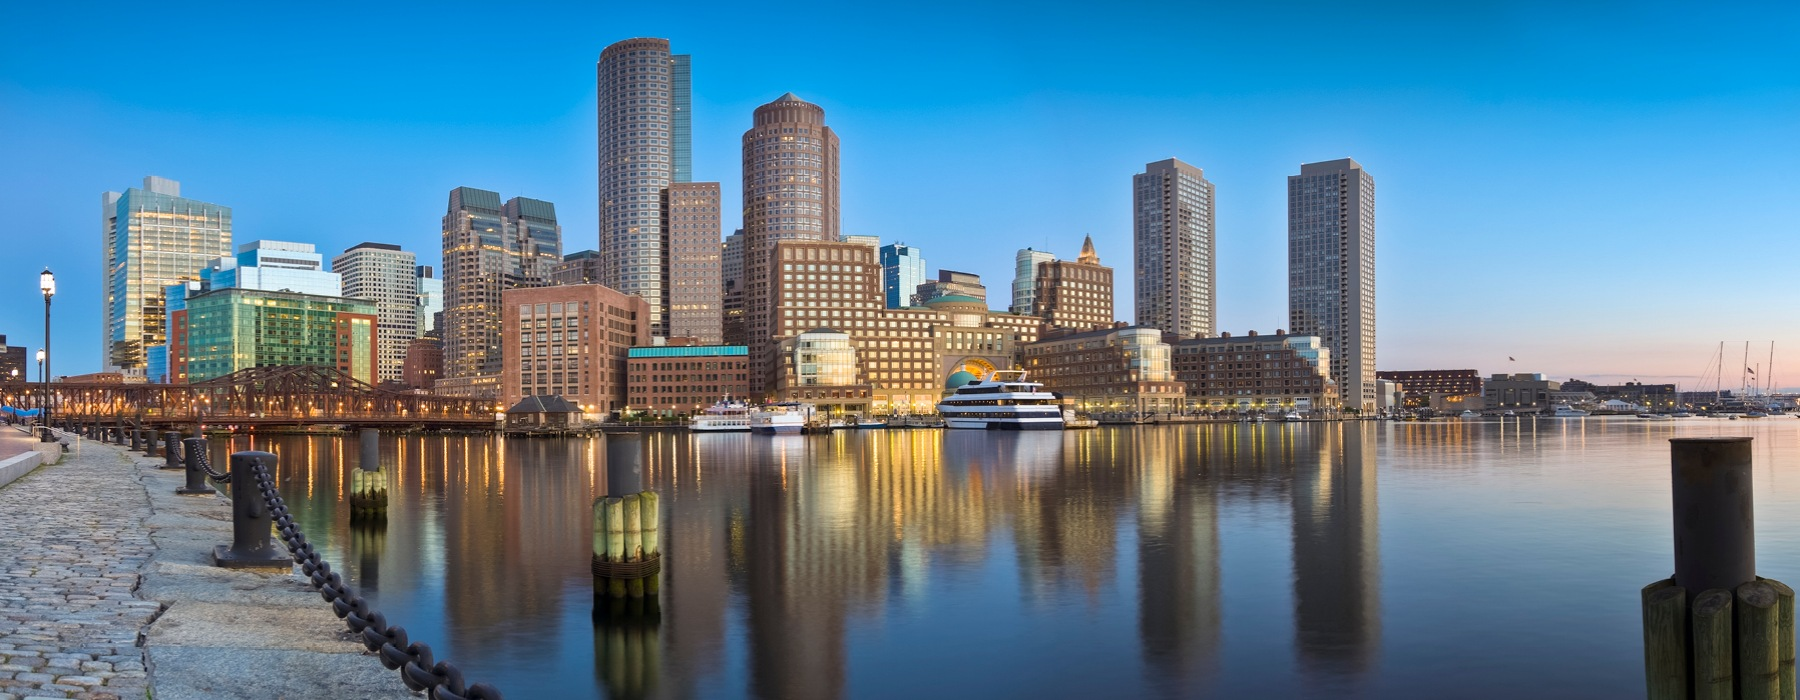 Image Of Boston Skyline From The Harbor